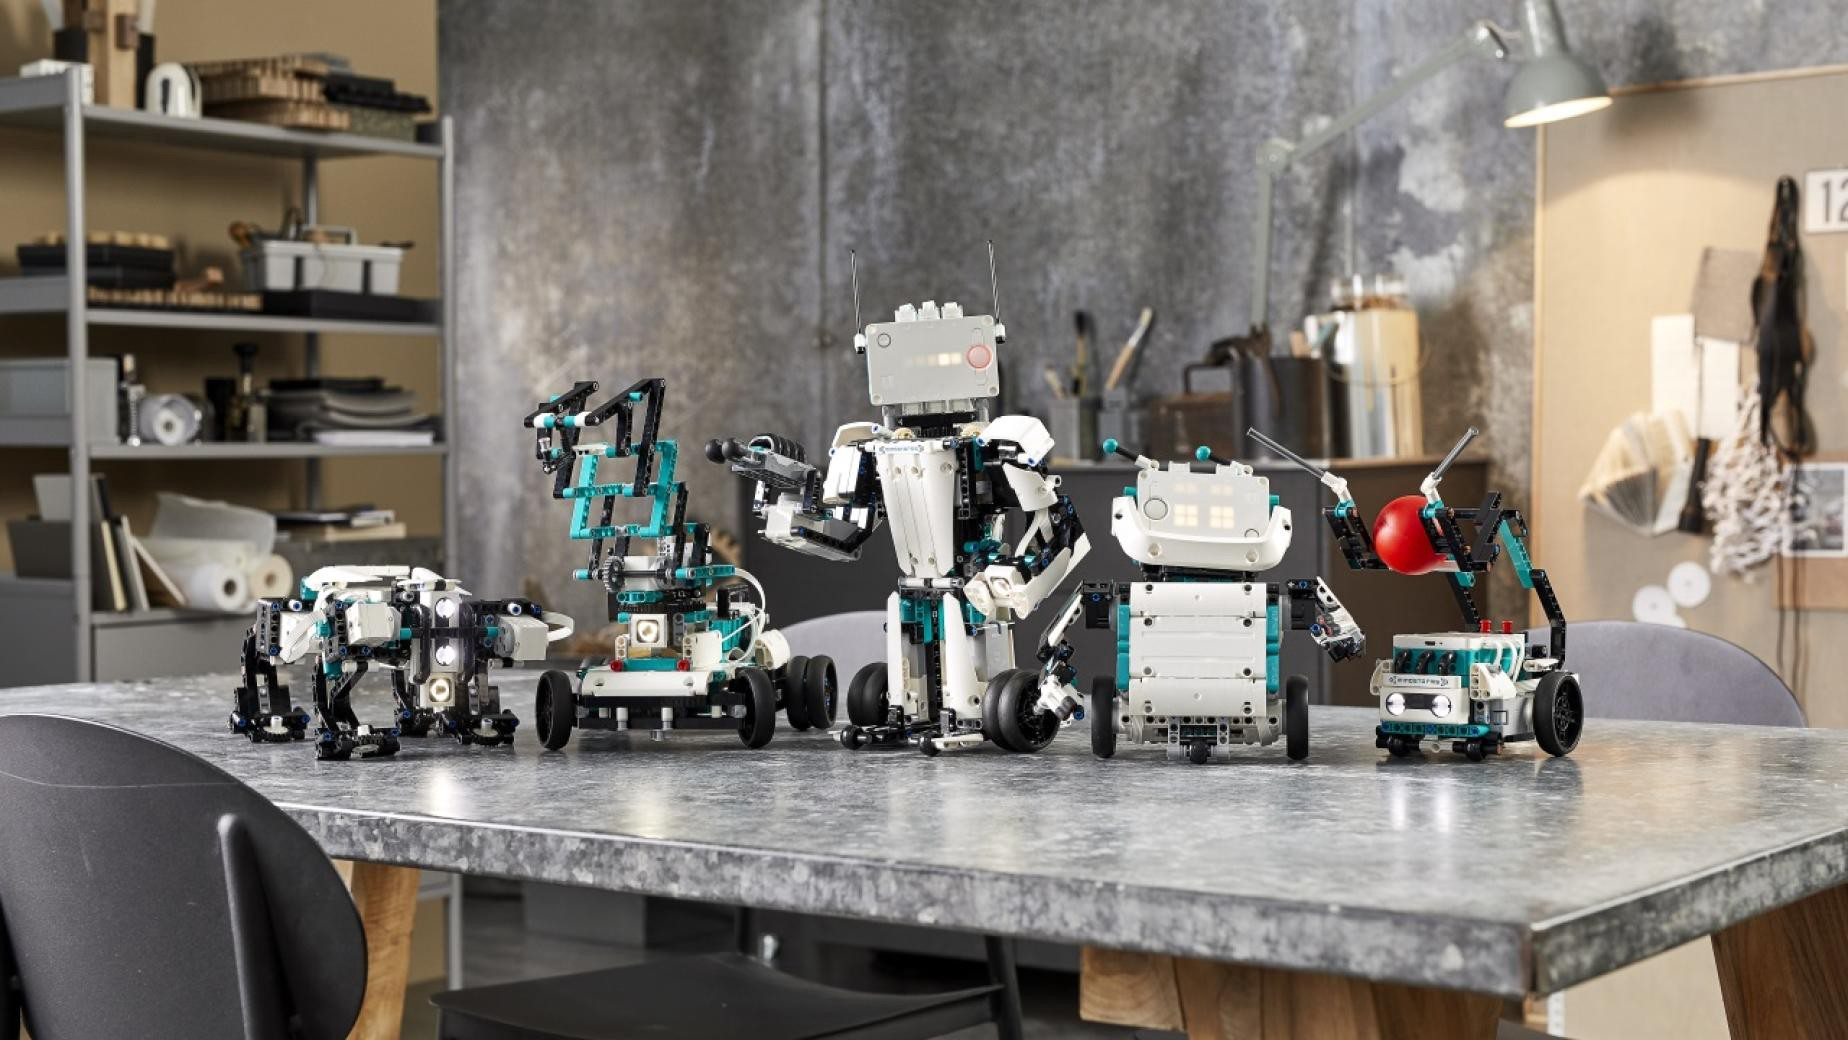 It Took 7 Years But Lego Finally Has A New Mindstorms Kit By Pcmag Pc Magazine Medium